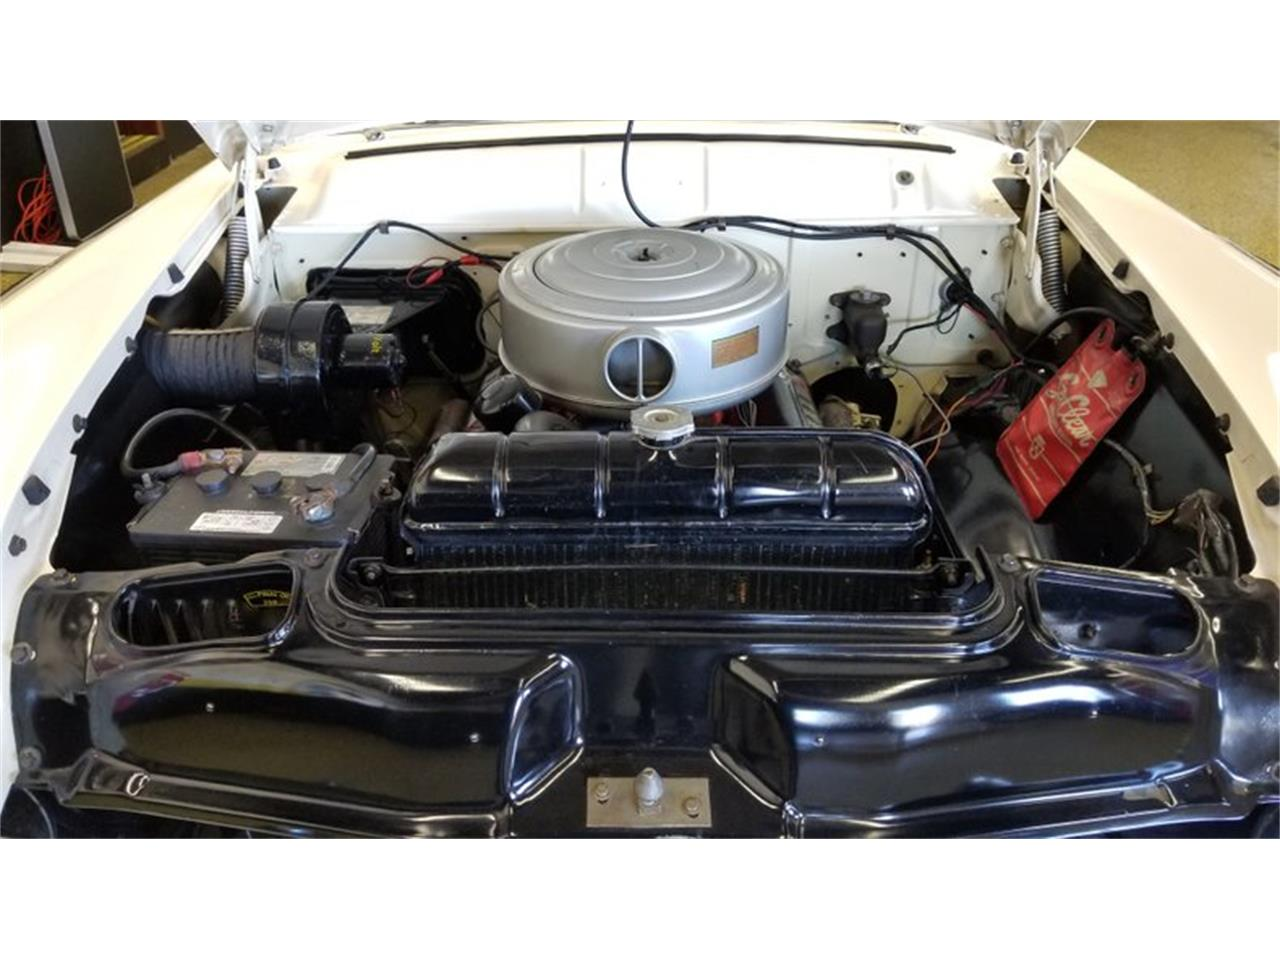 Large Picture of Classic 1955 Ford Crown Victoria - $39,900.00 - PW8I